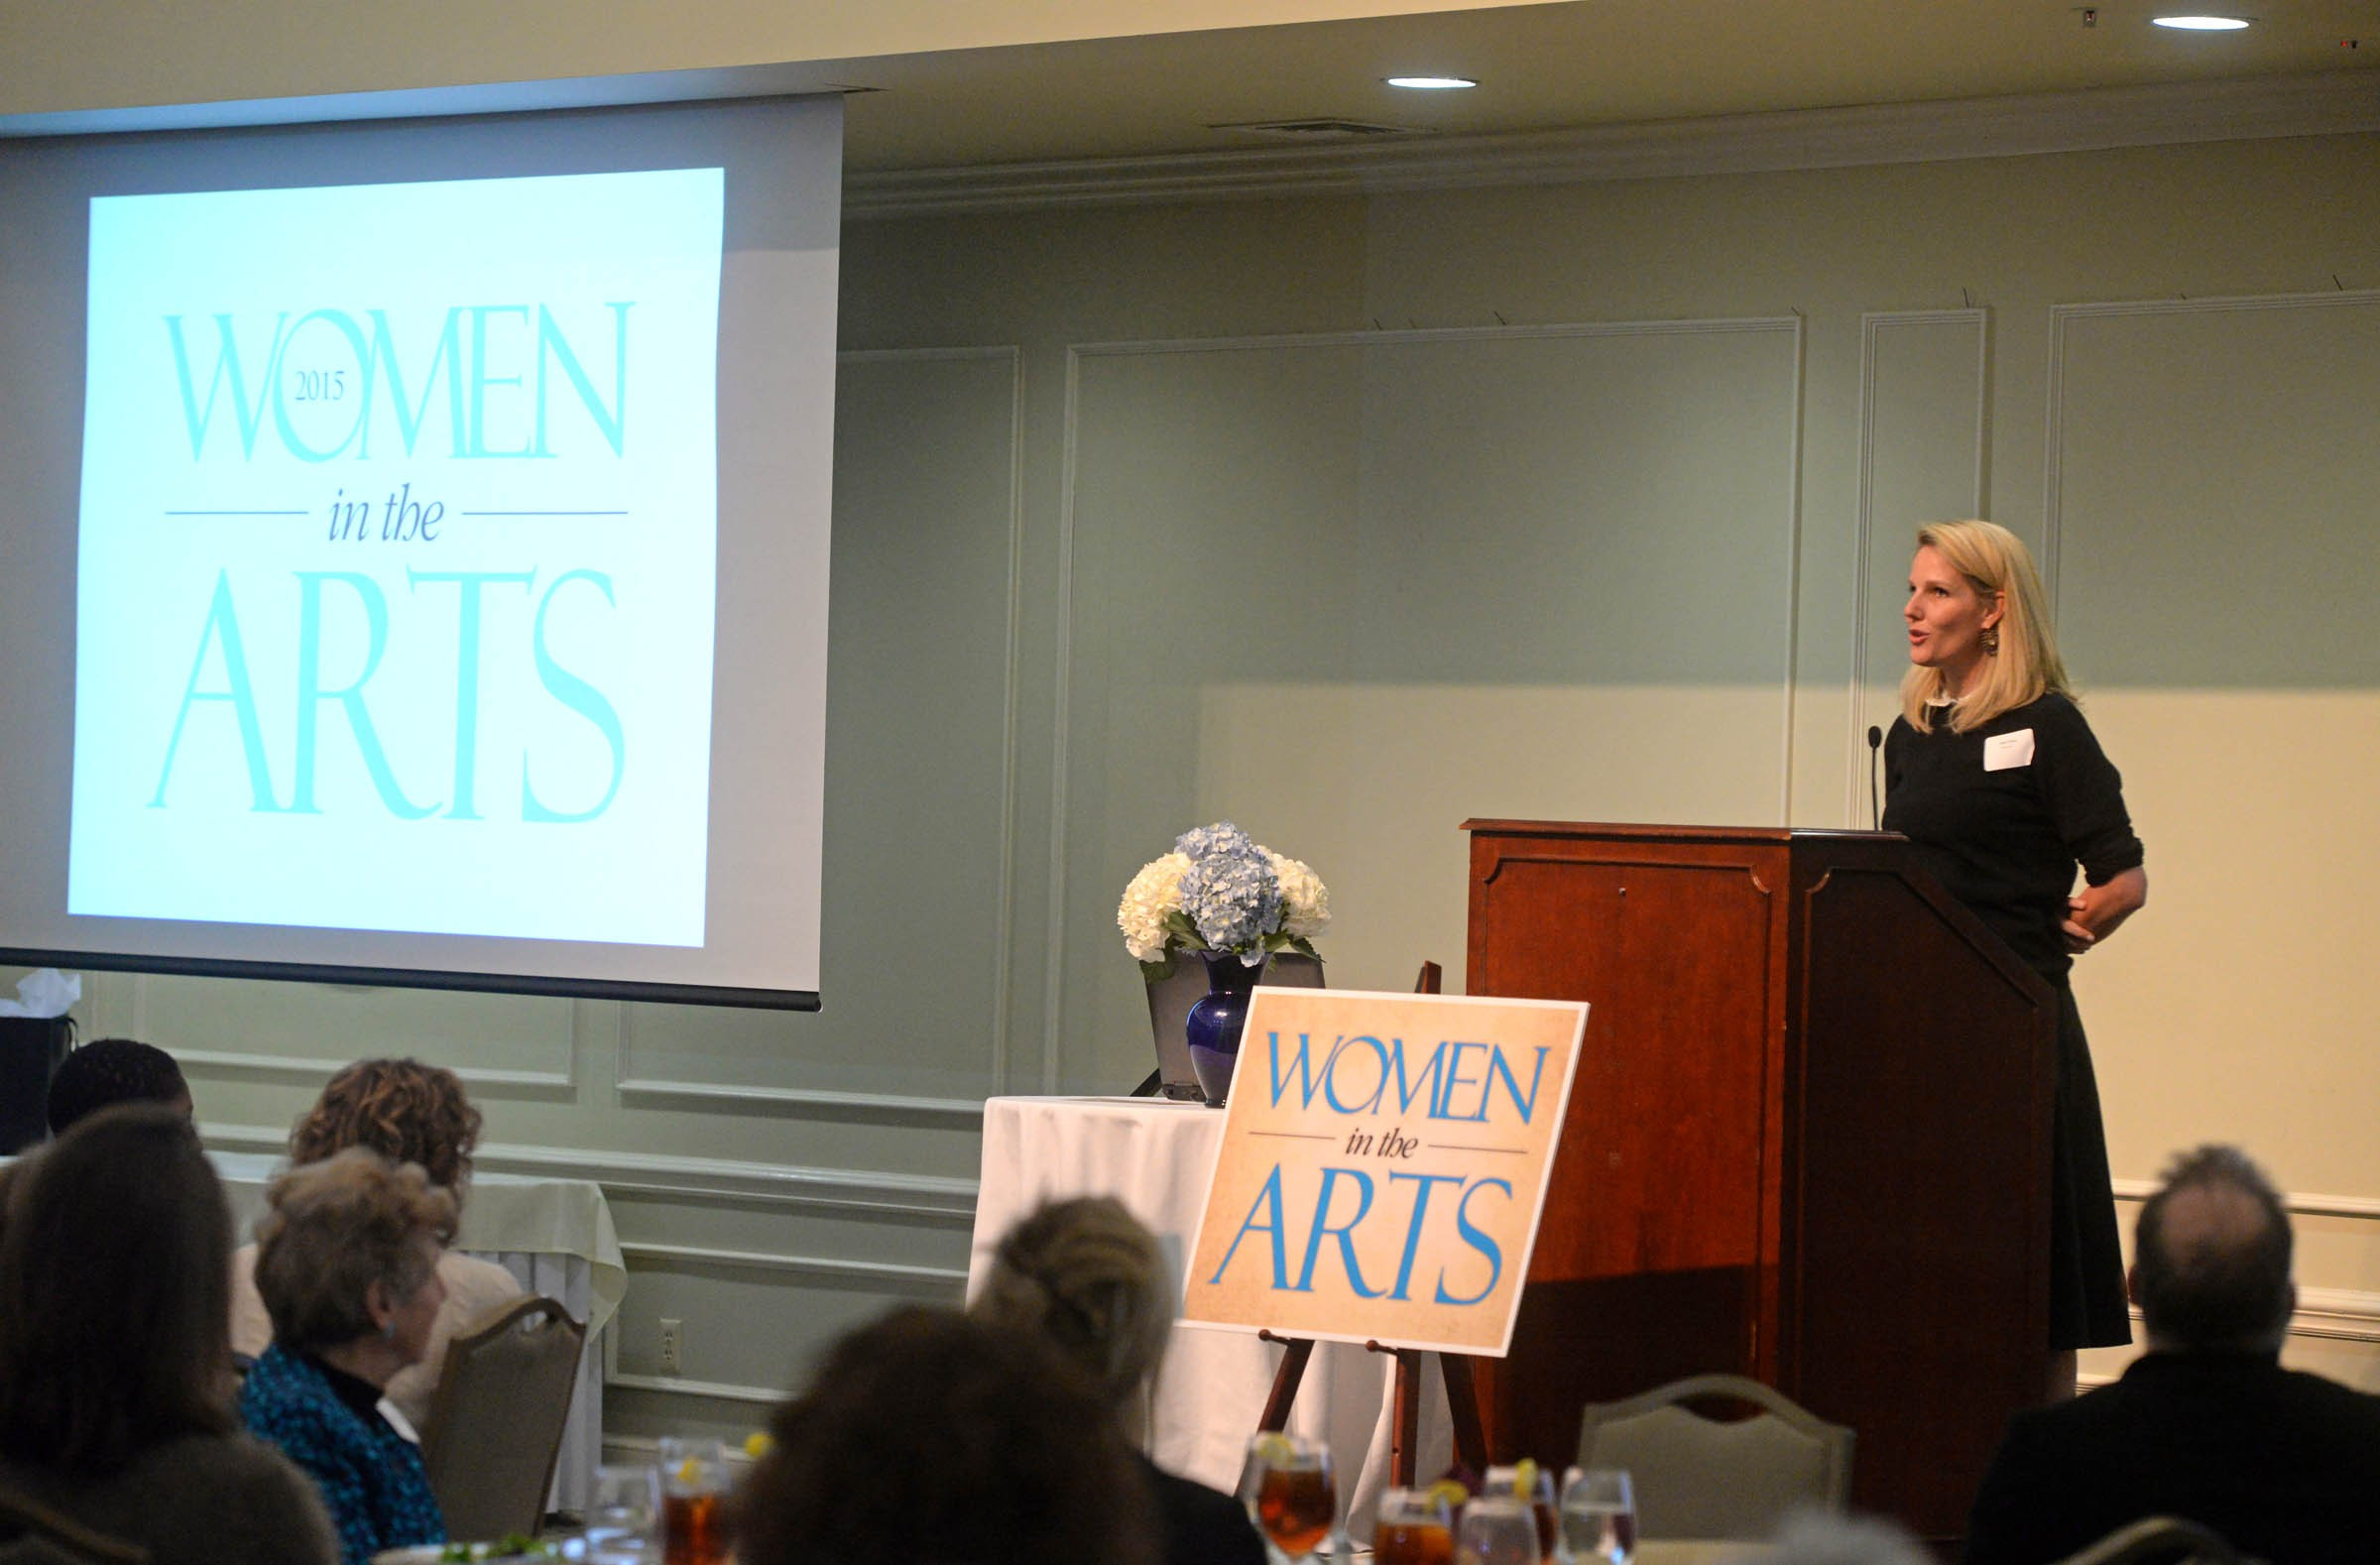 Katie Ukrop was named one of Style's 2015 Women in the Arts by a panel of community judges for her contribution to Richmond arts and culture. - SCOTT ELMQUIST